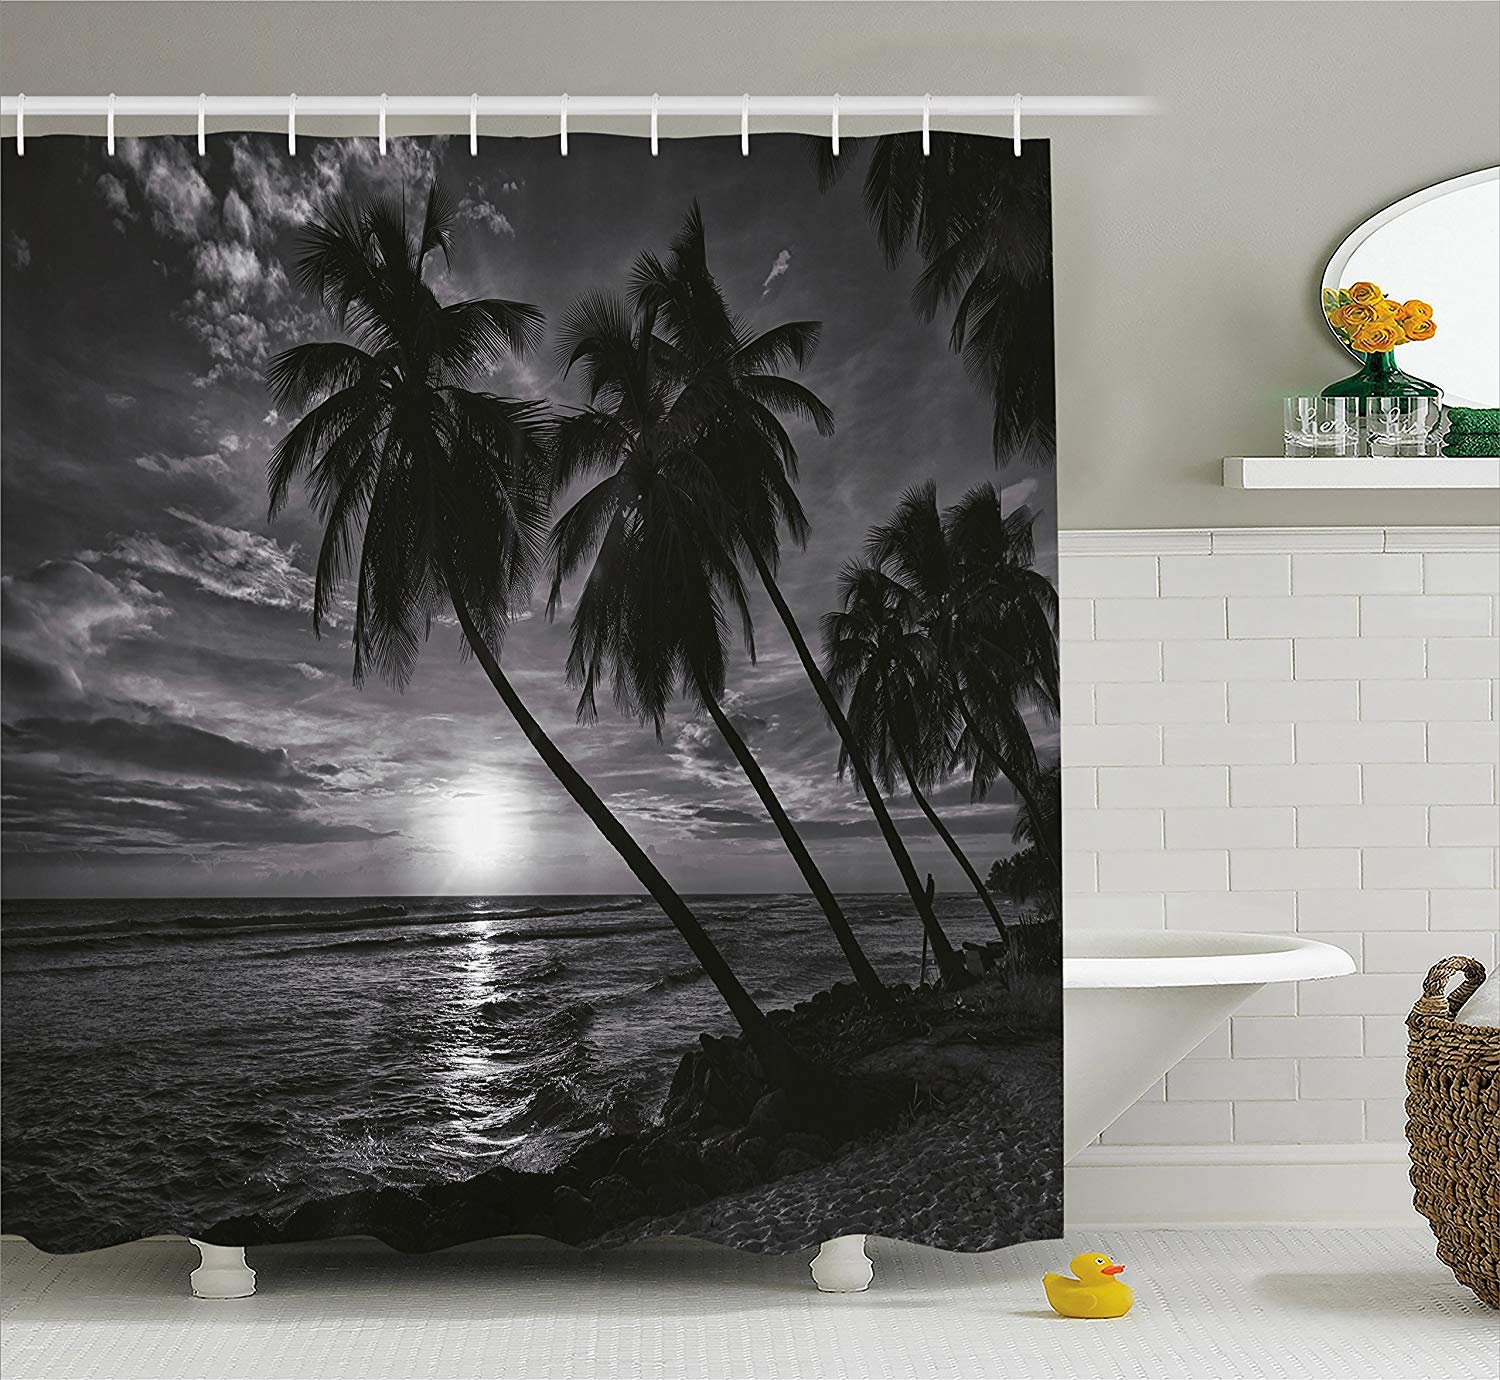 Afagahahs Tropical Shower Curtain Coconut Palm Trees on Beach Bend by The Wind Horizon Over The Sea Picture Fabric Bathroom Decor with Hooks Black and White